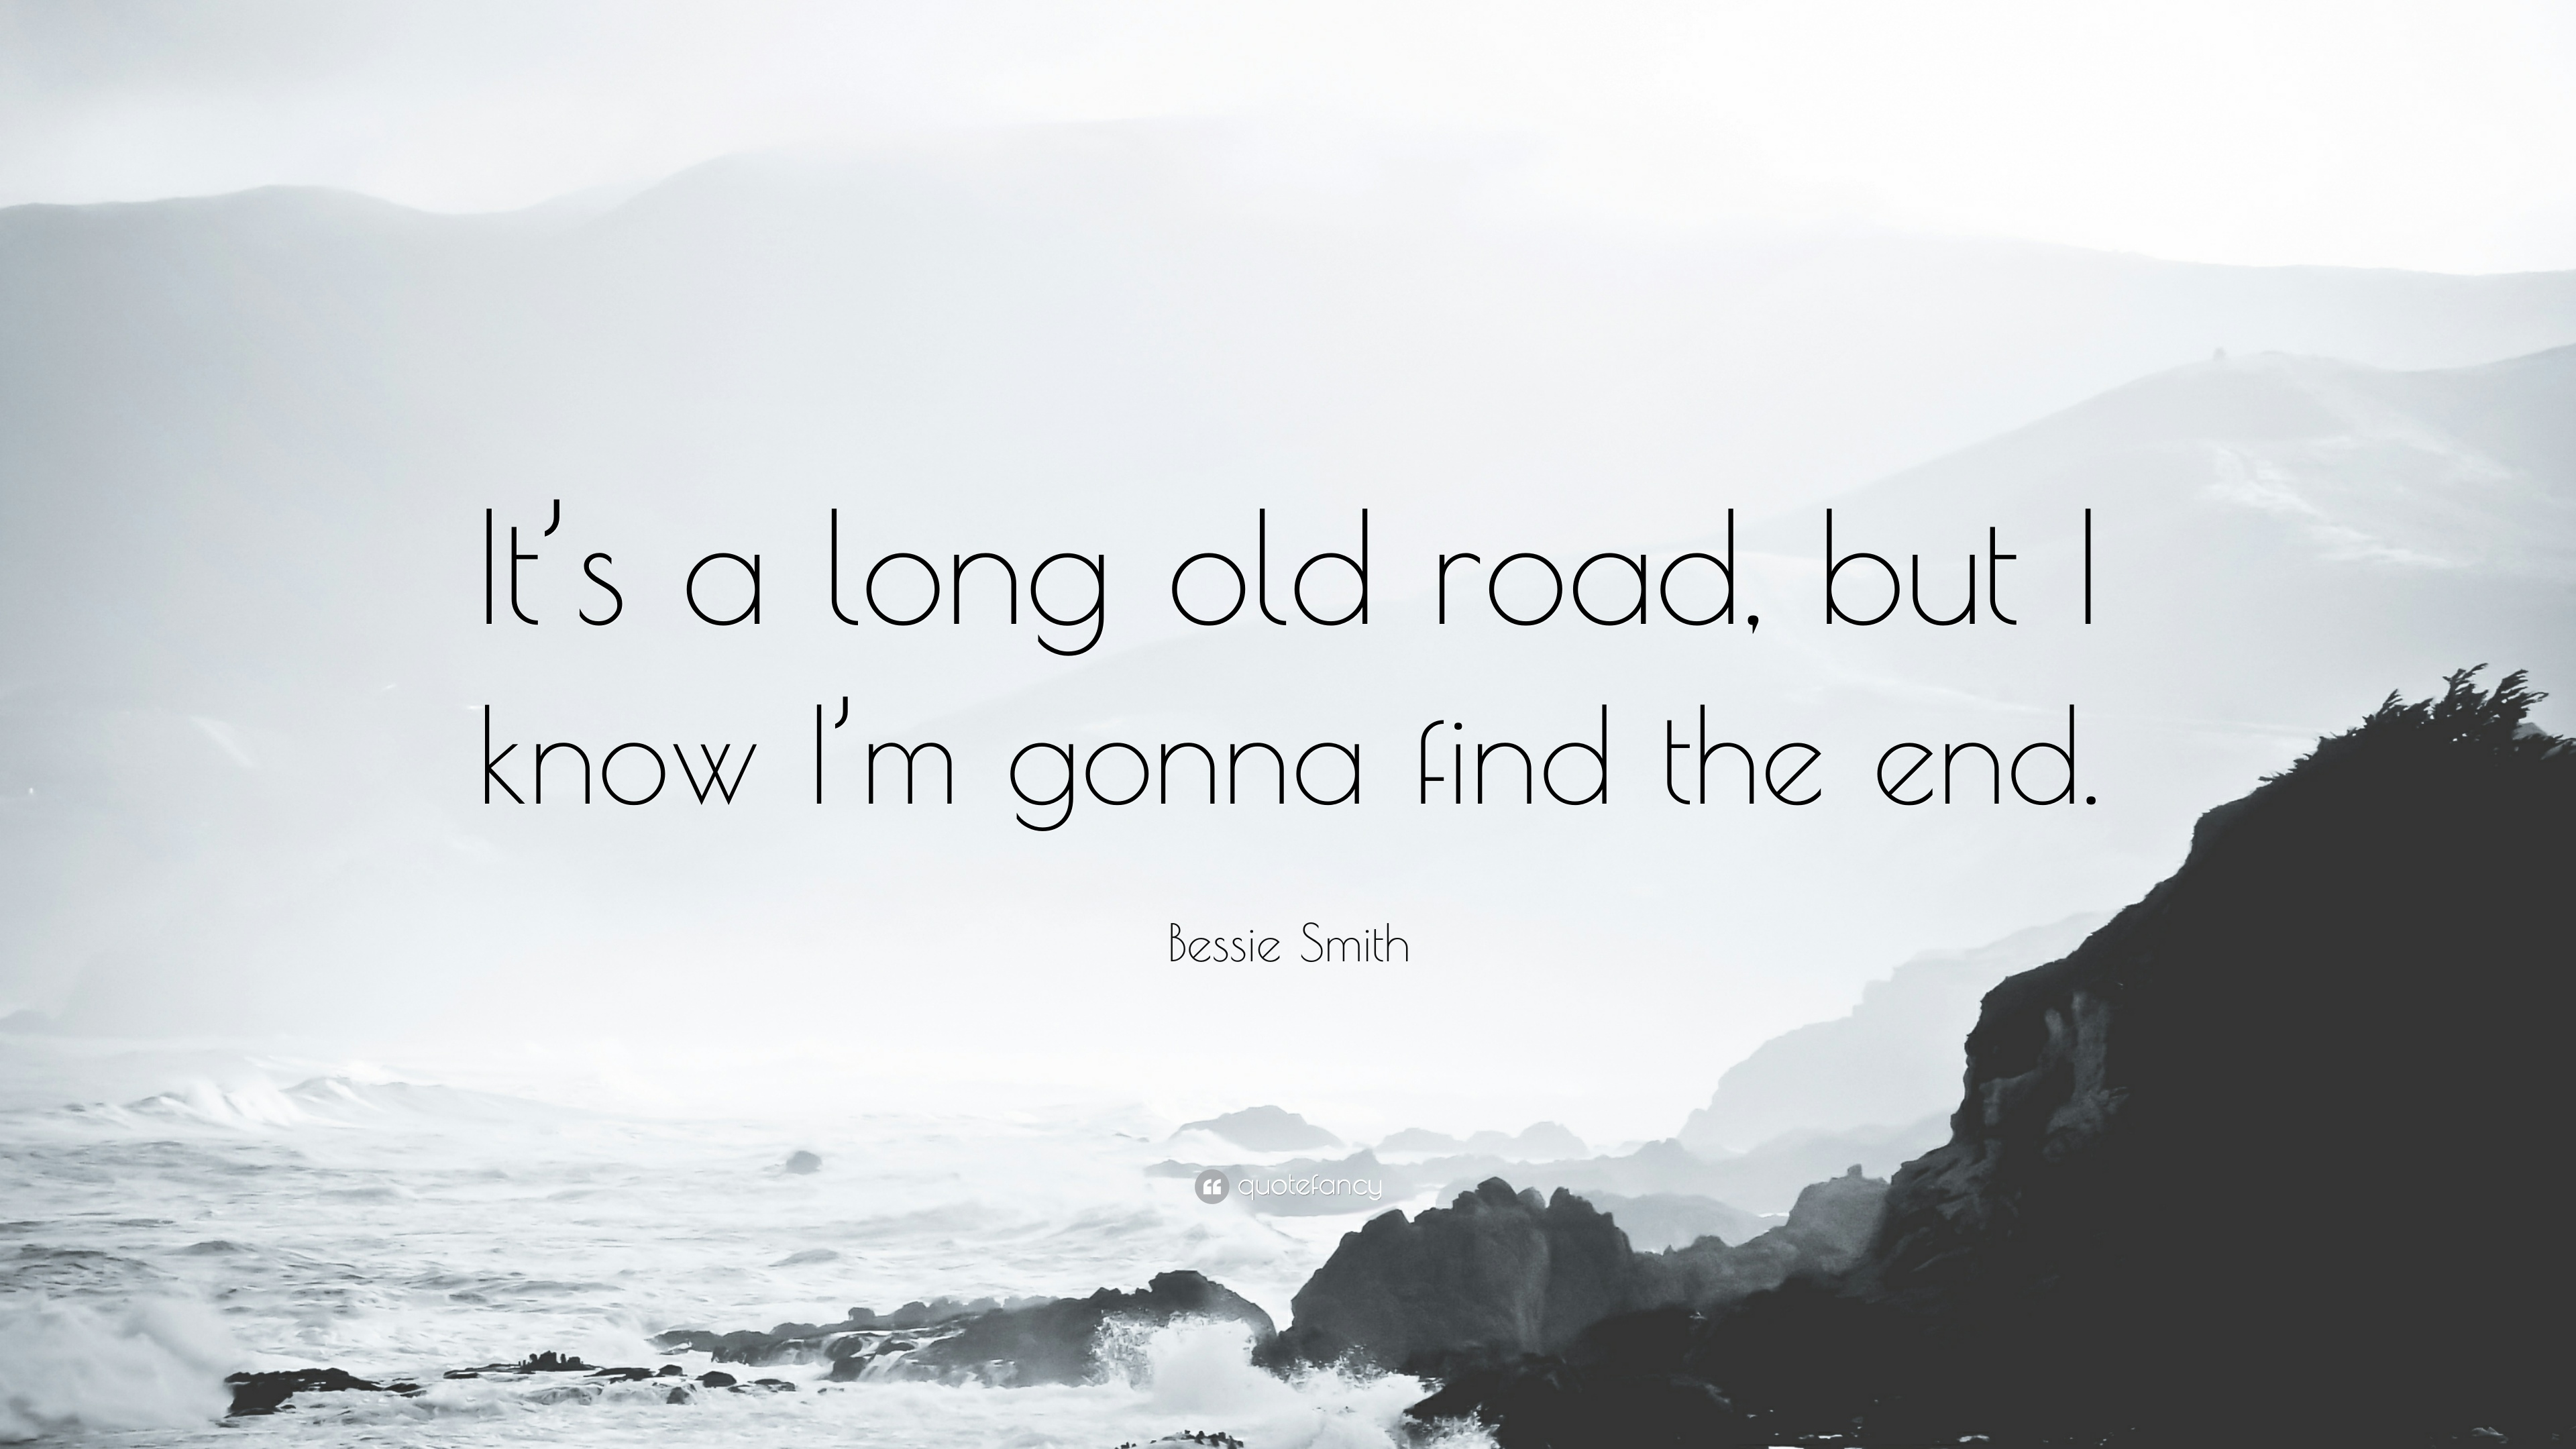 Bessie Smith Quotes Bessie Smith Quotes 7 Wallpapers  Quotefancy